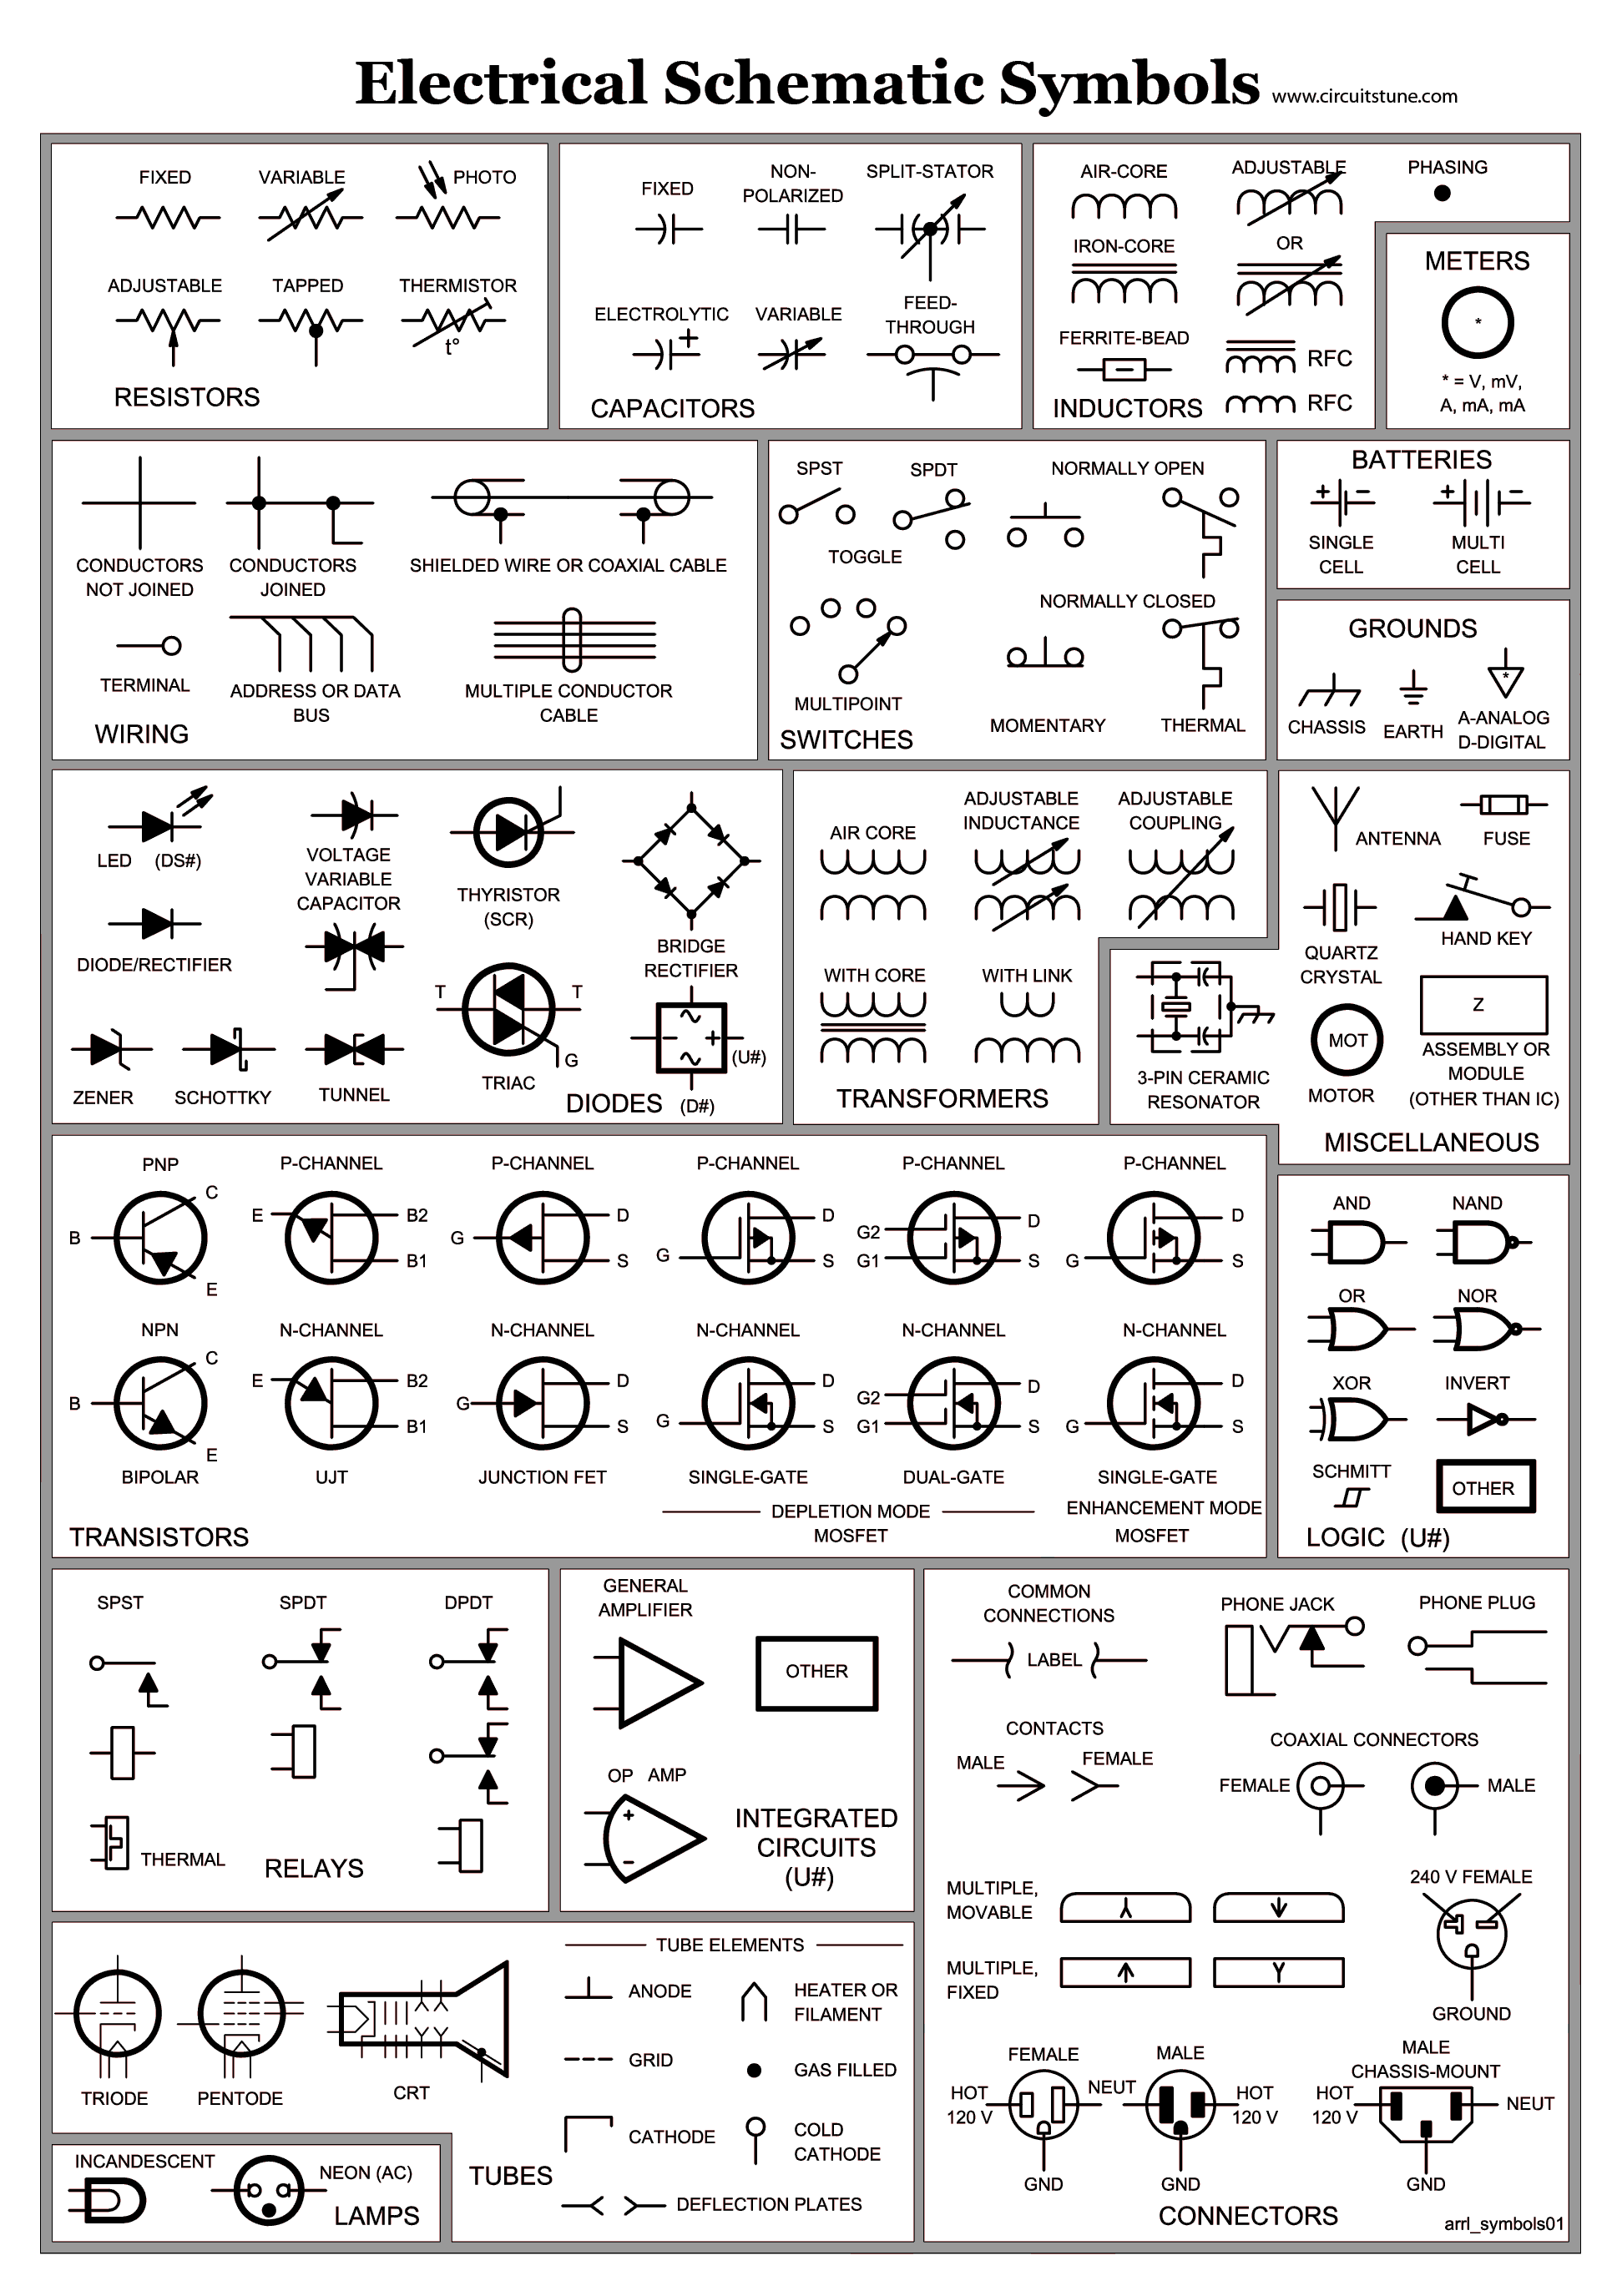 electrical circuit symbols and meanings electrical schematic symbols Complete Electrical Symbols